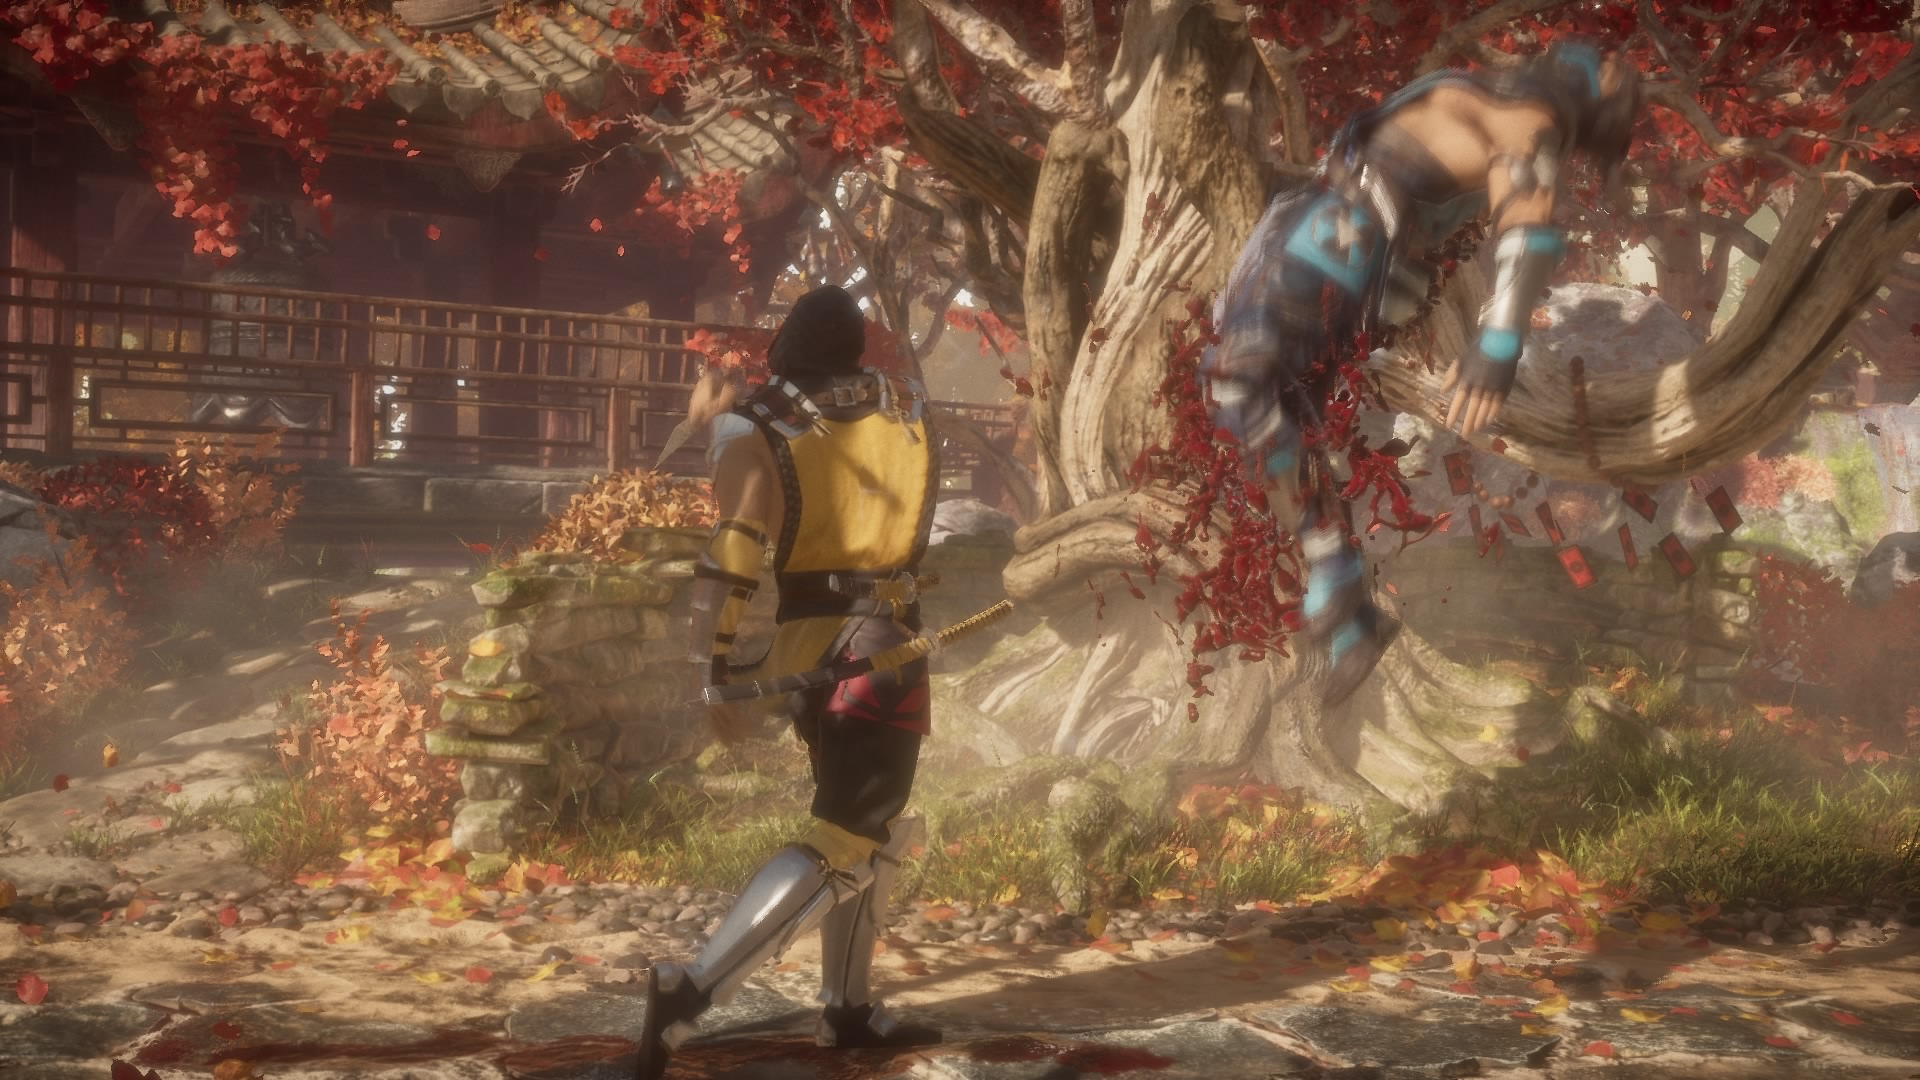 Mortal Kombat 11 review: Great gameplay, excessively ...